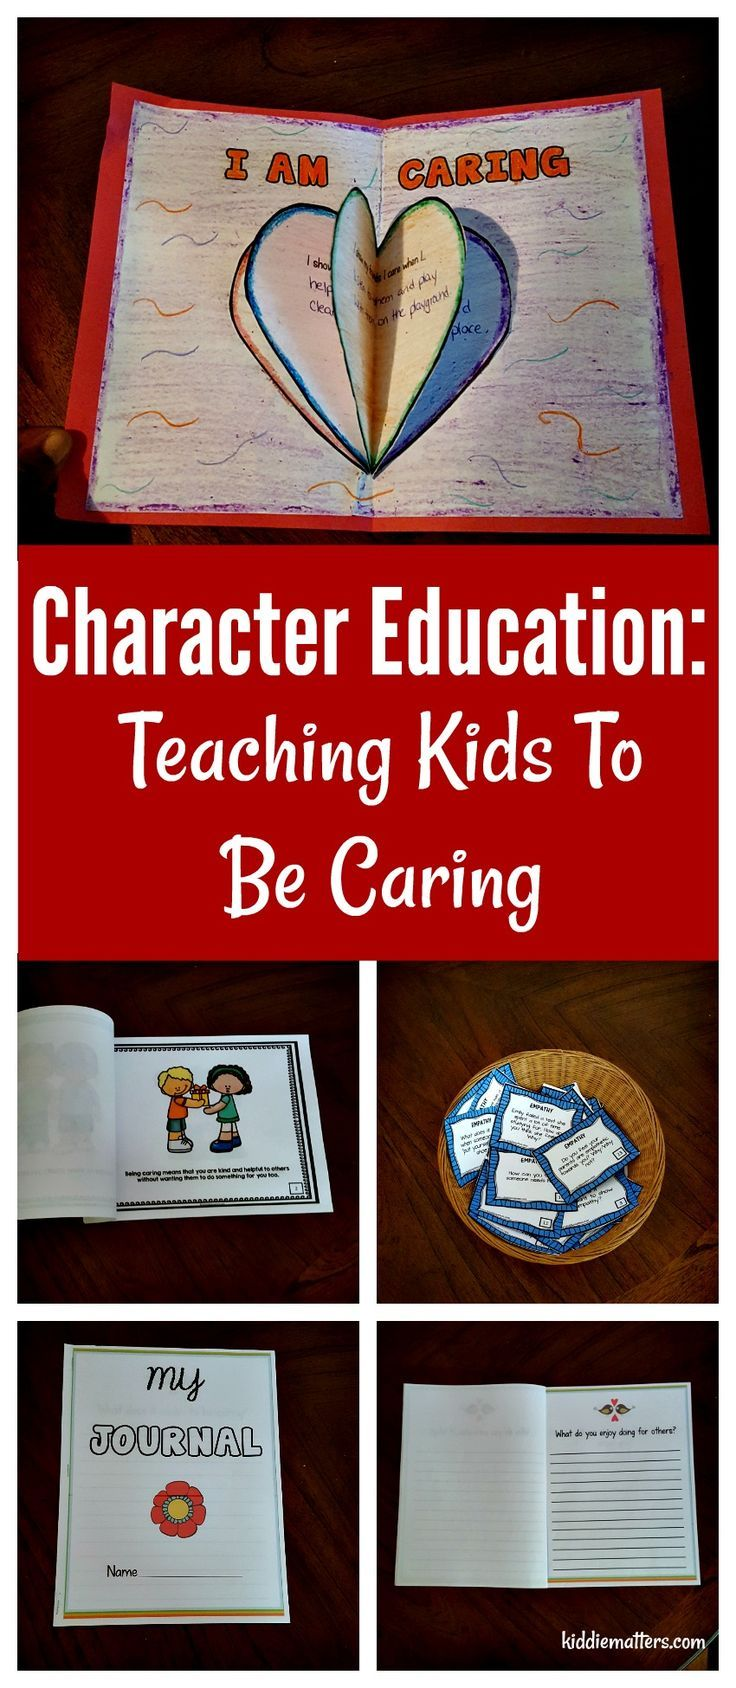 It's important that we teach kids how to be caring. These counseling activities are great for teaching kids about empathy. This resource includes hands on crafts, a journal, discussion cards, worksheets, and more!  Great for elementary school counseling, counselors, parents, and teachers.